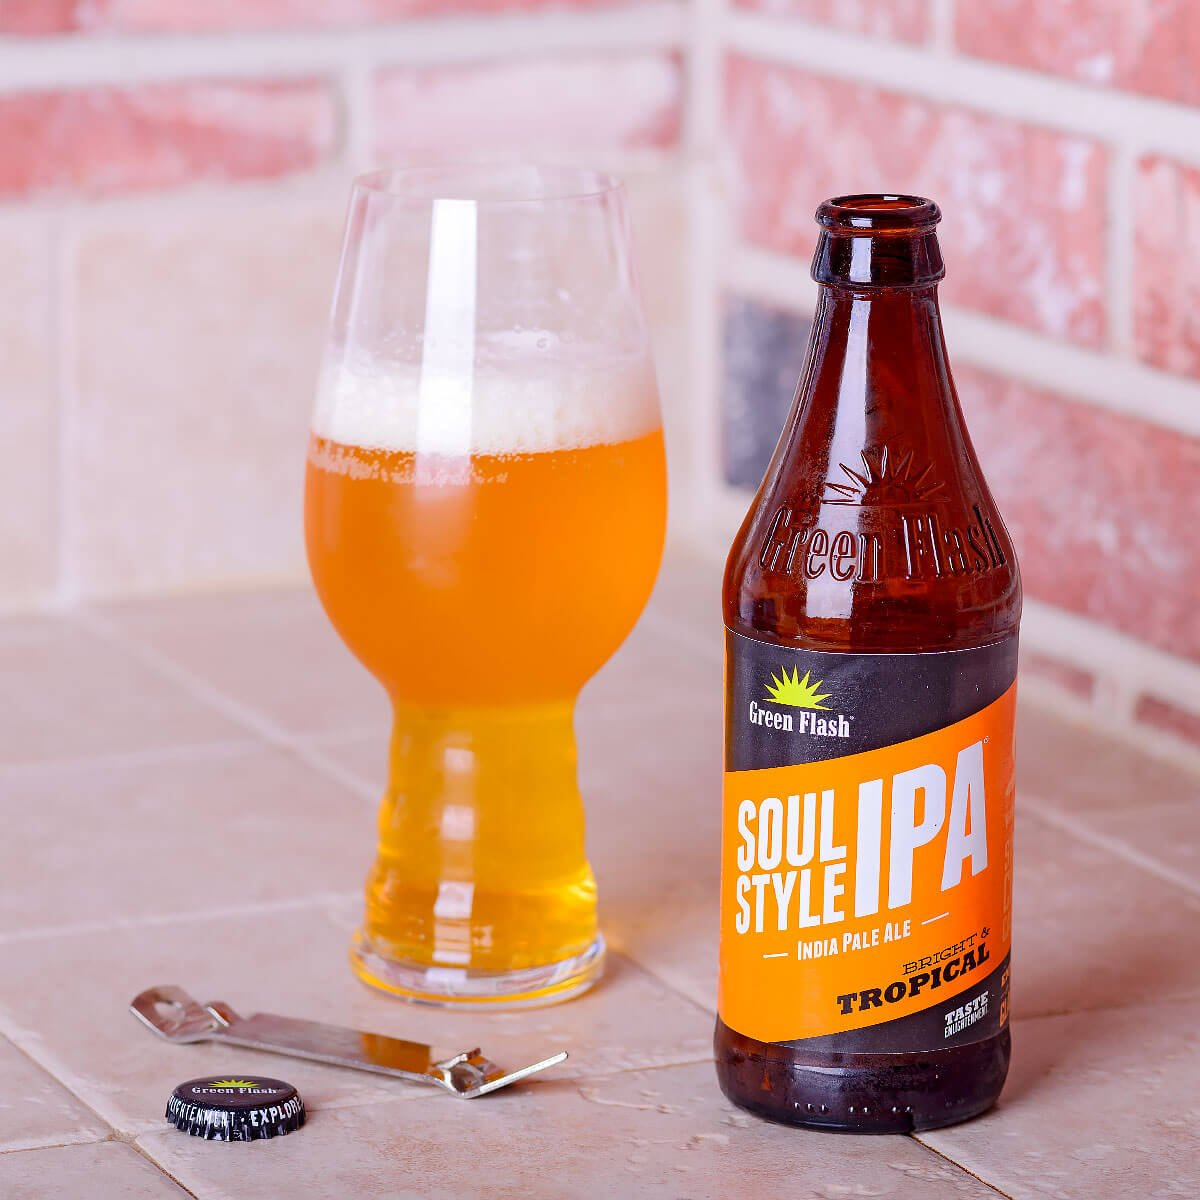 Soul Style IPA, an American IPA by Green Flash Brewing Co.